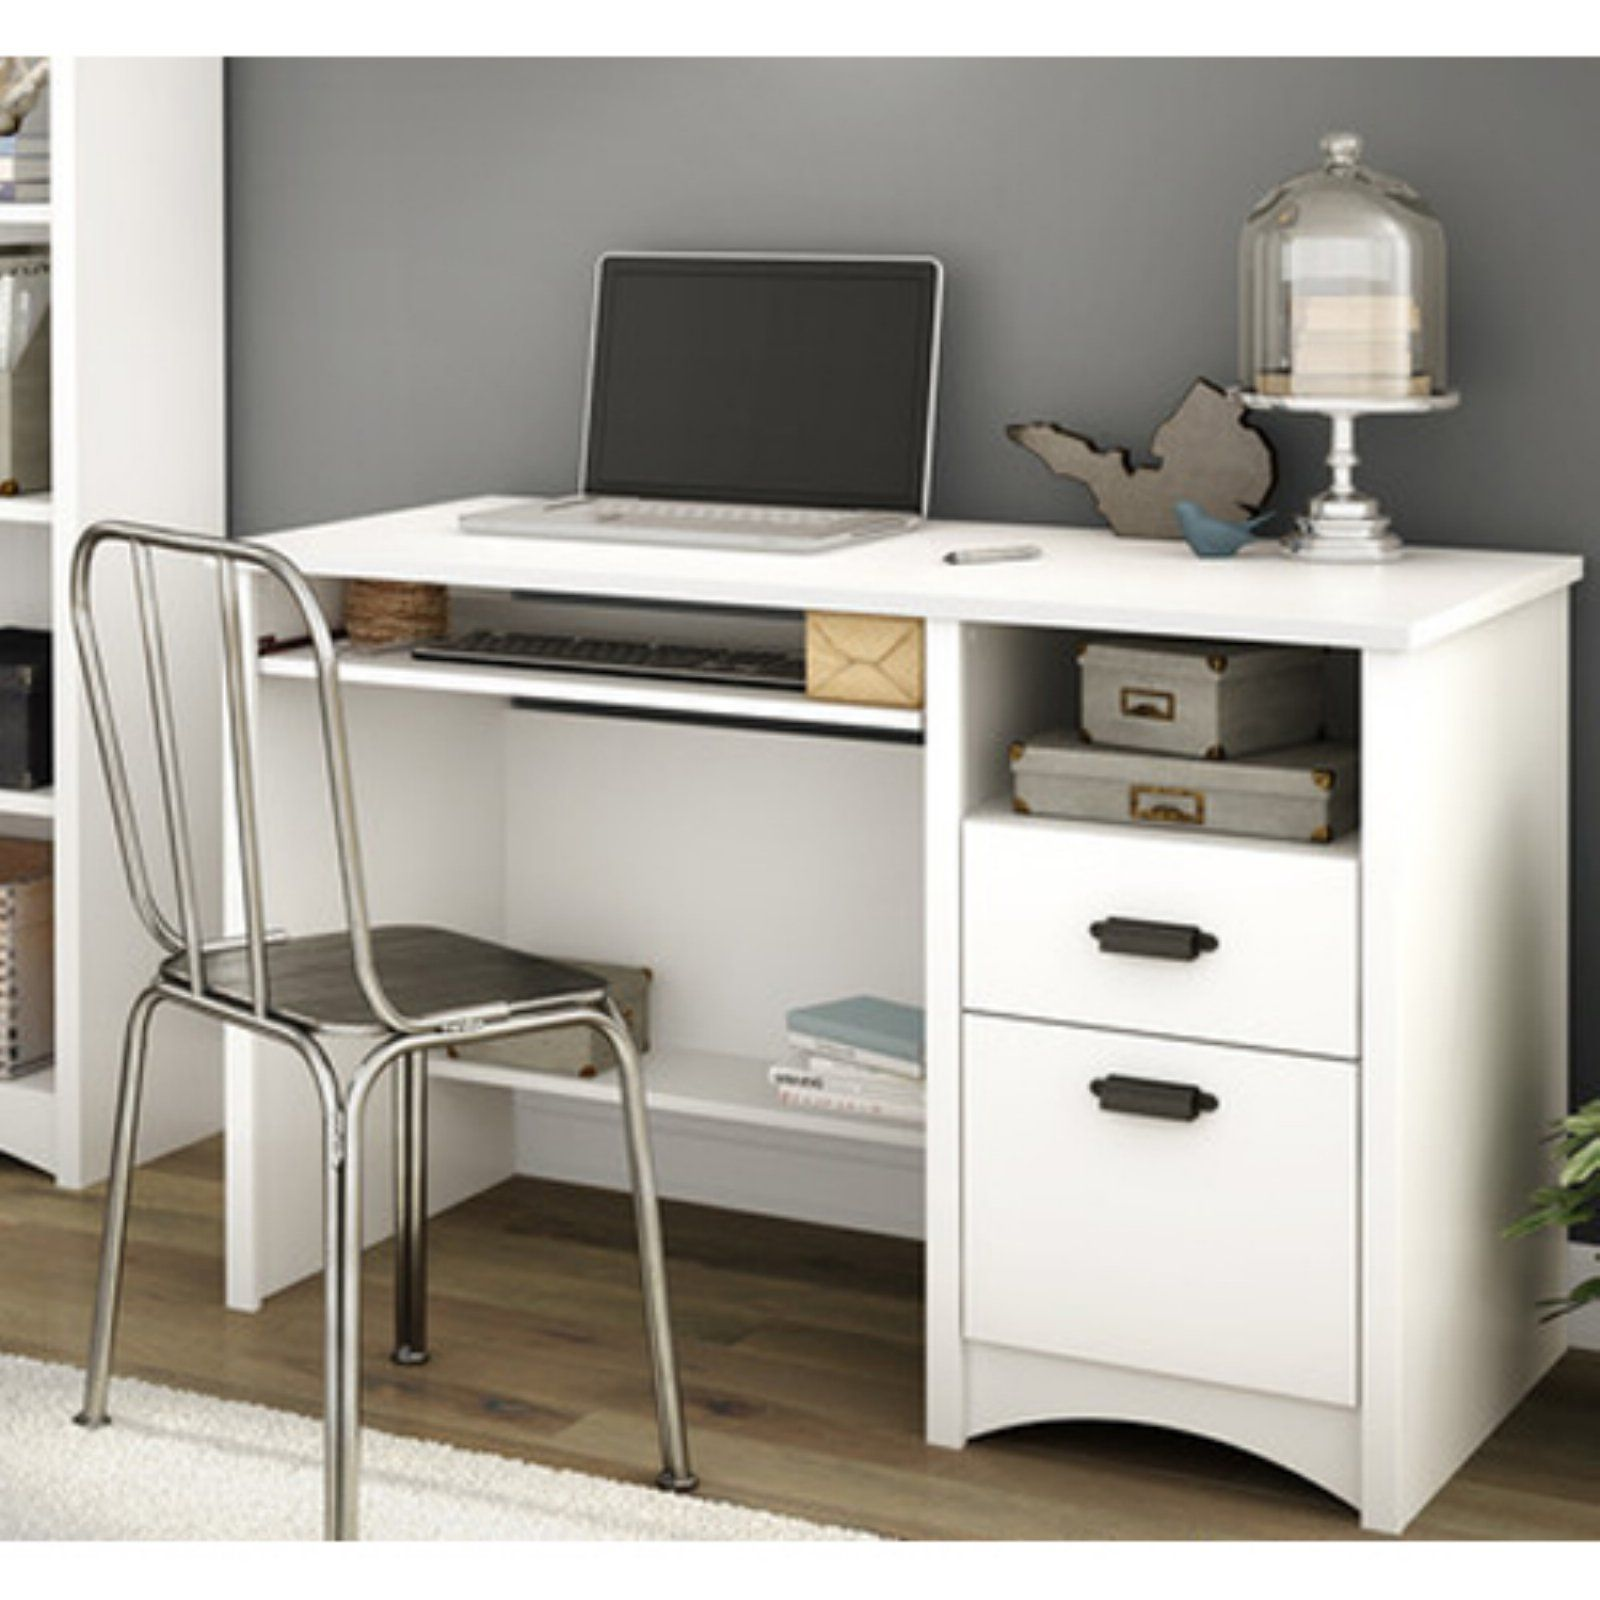 Gascony Computer Desk With Keyboard Tray By South Shore Desk With Keyboard Tray Desk Best Desk